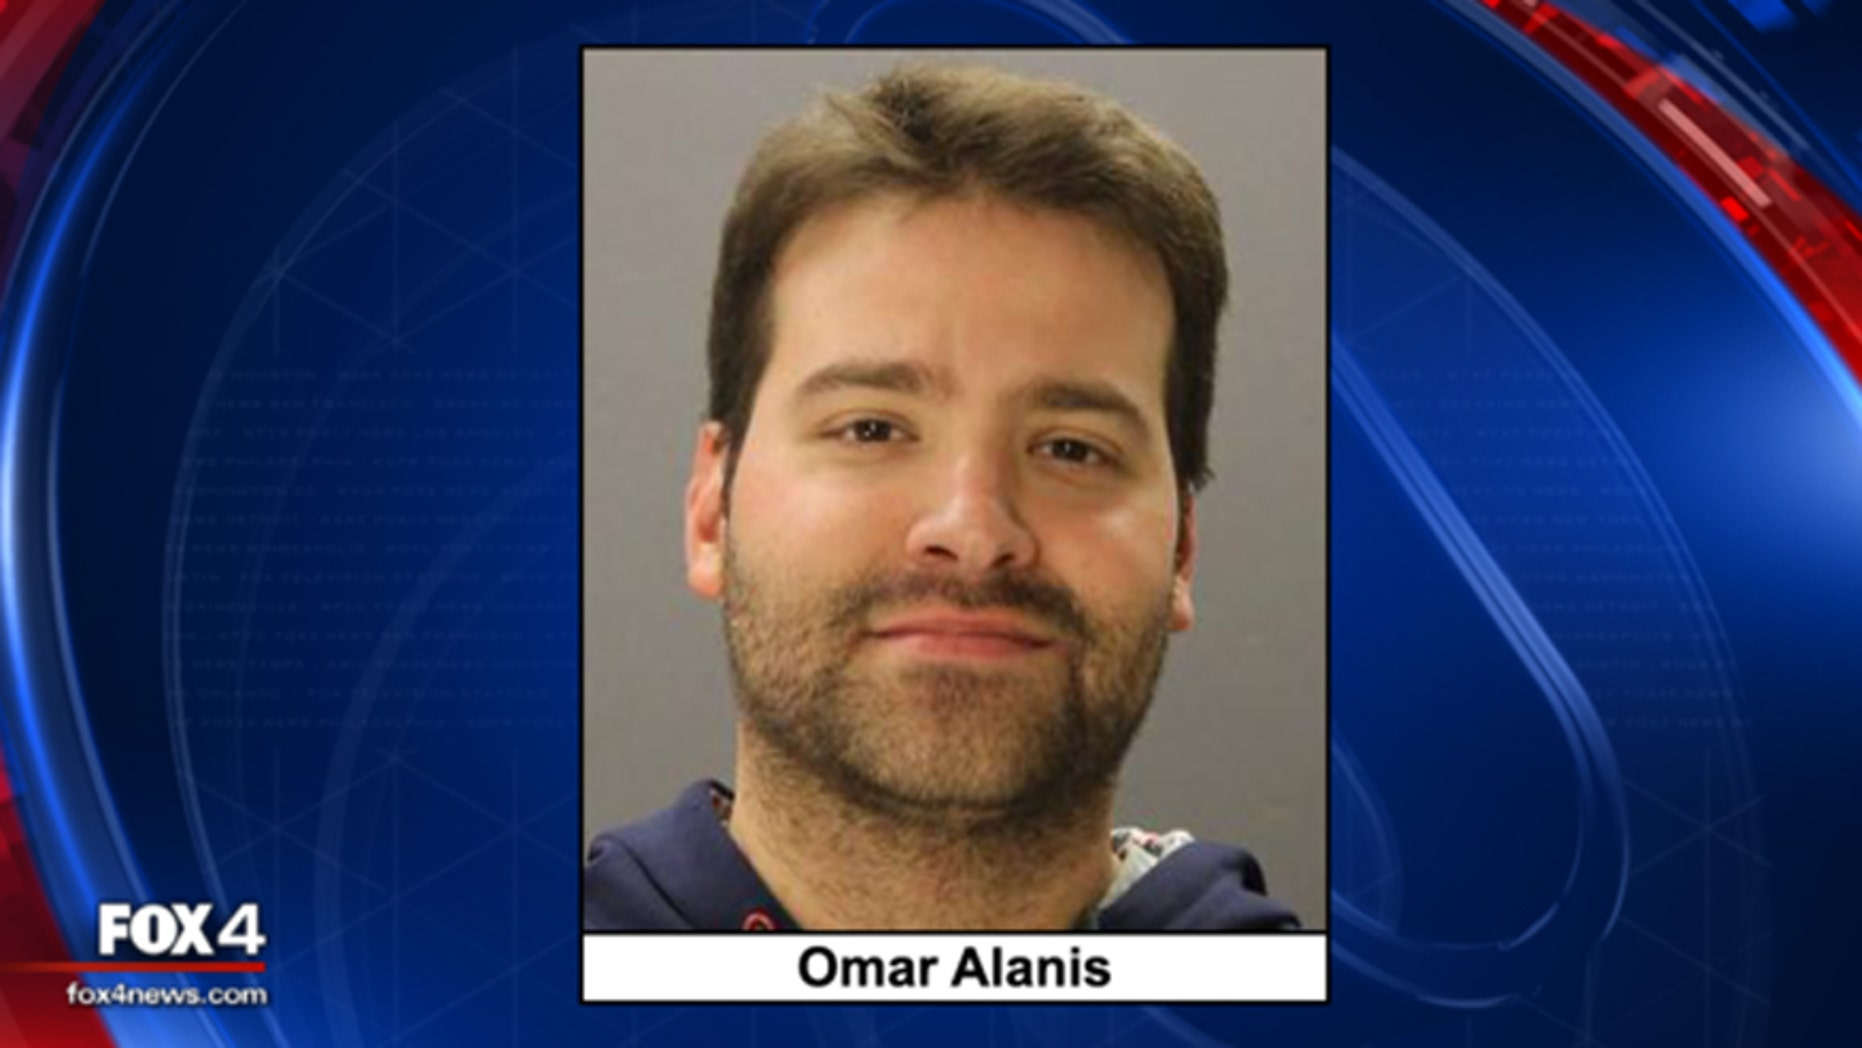 Omar Alanis, 29, who was arrested for reportedly threatening to kill the staff at a Dallas school if he didn't get a raise.